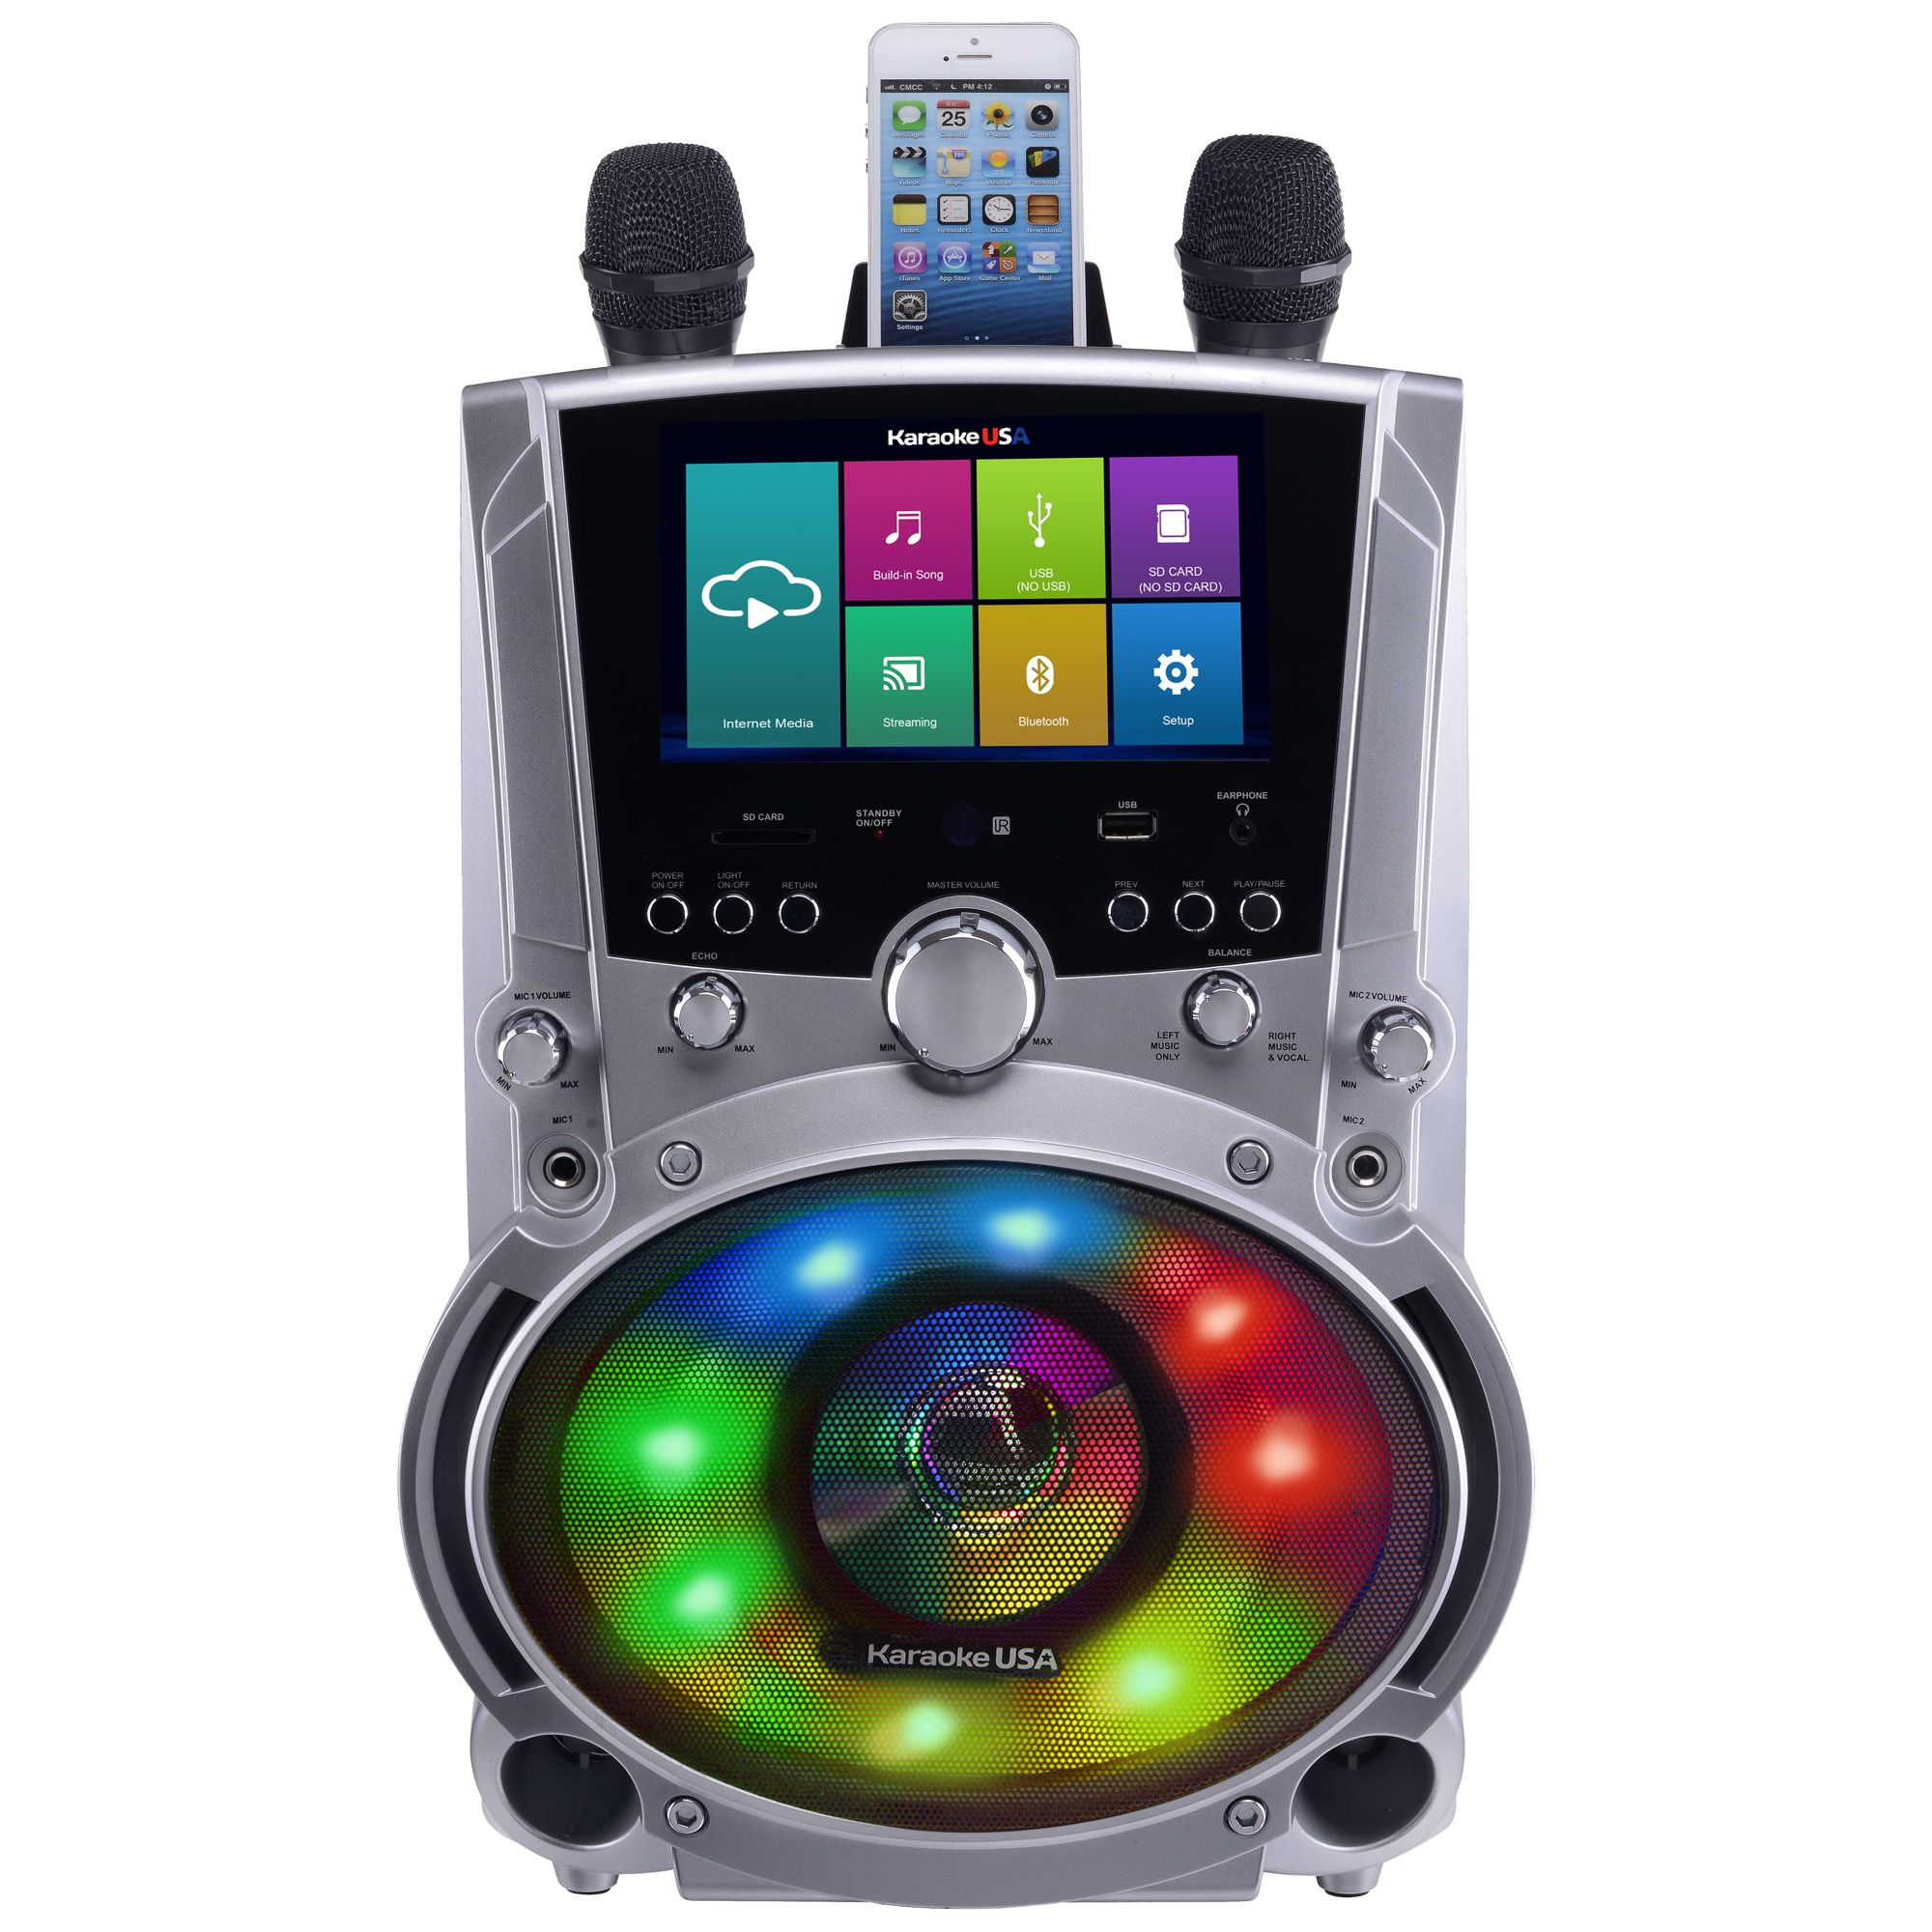 WK760 - All-In-One Wi-Fi Multimedia Karaoke System With 7